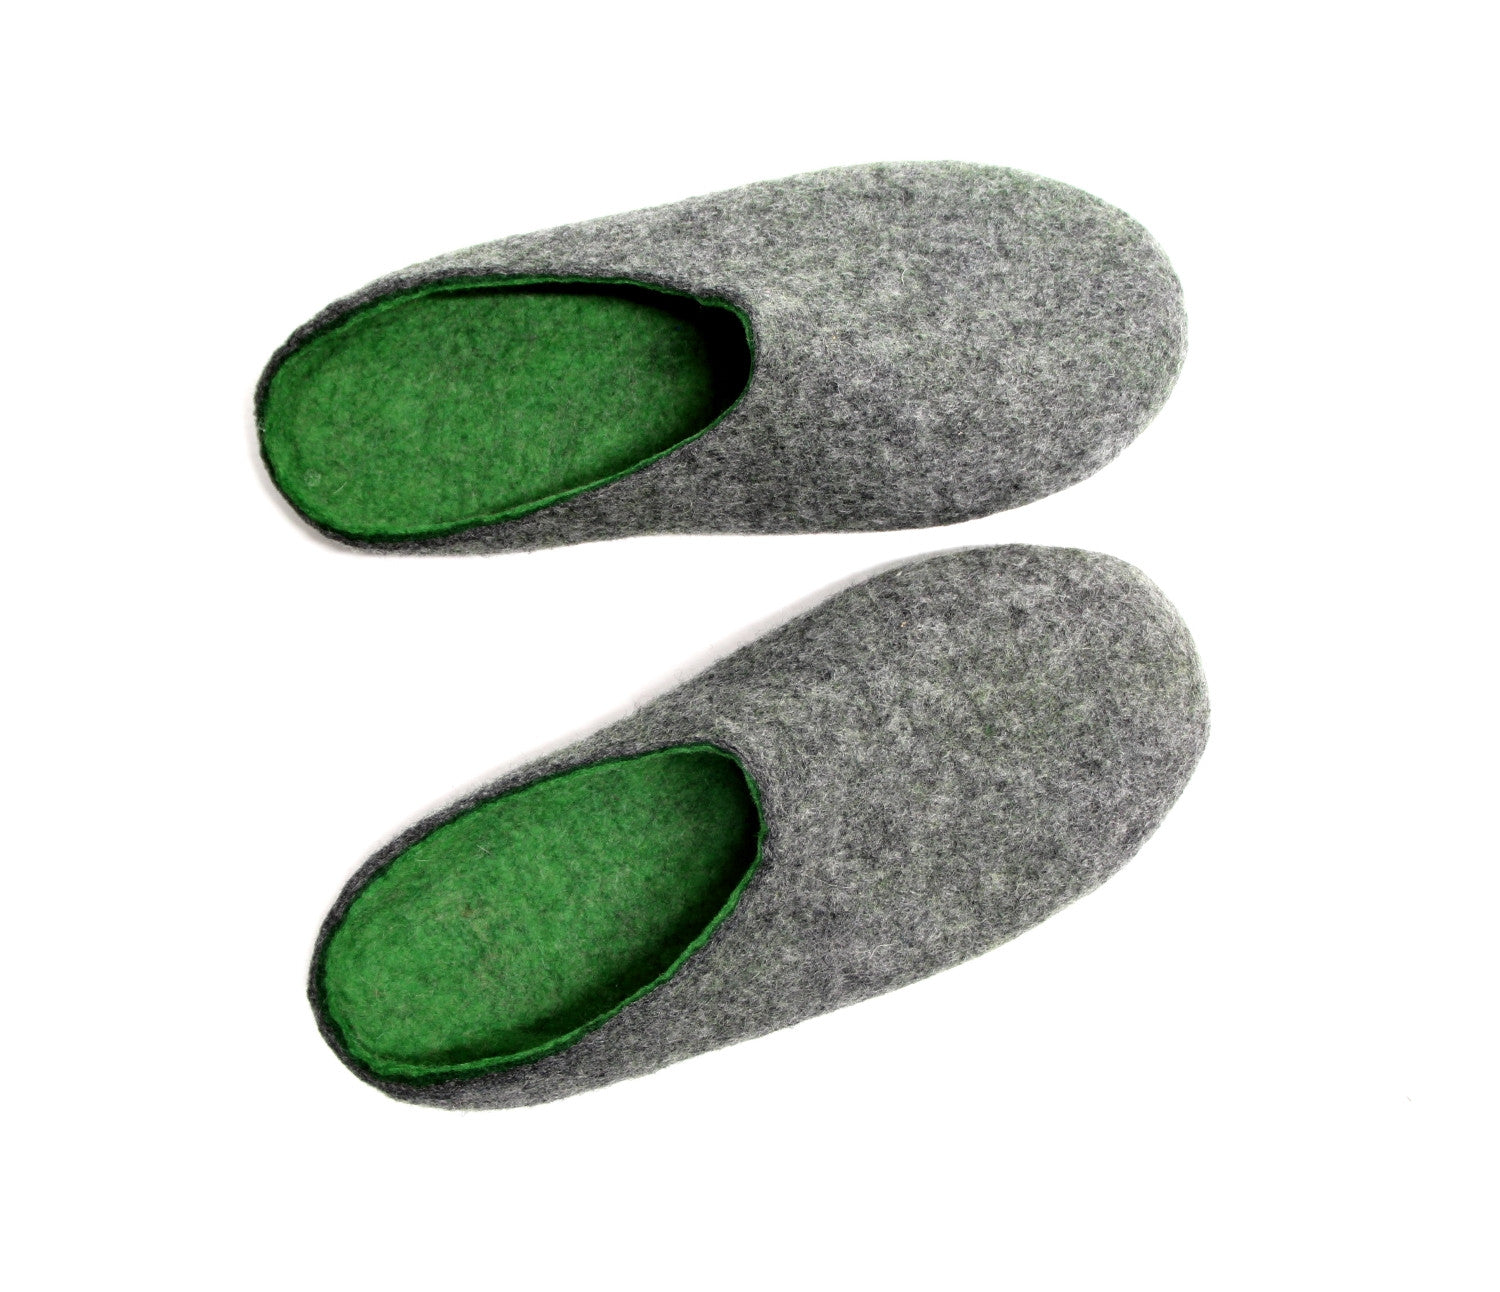 Mens Felt Clogs Dark Grey Green Color Sole - Wool Walker  - 2